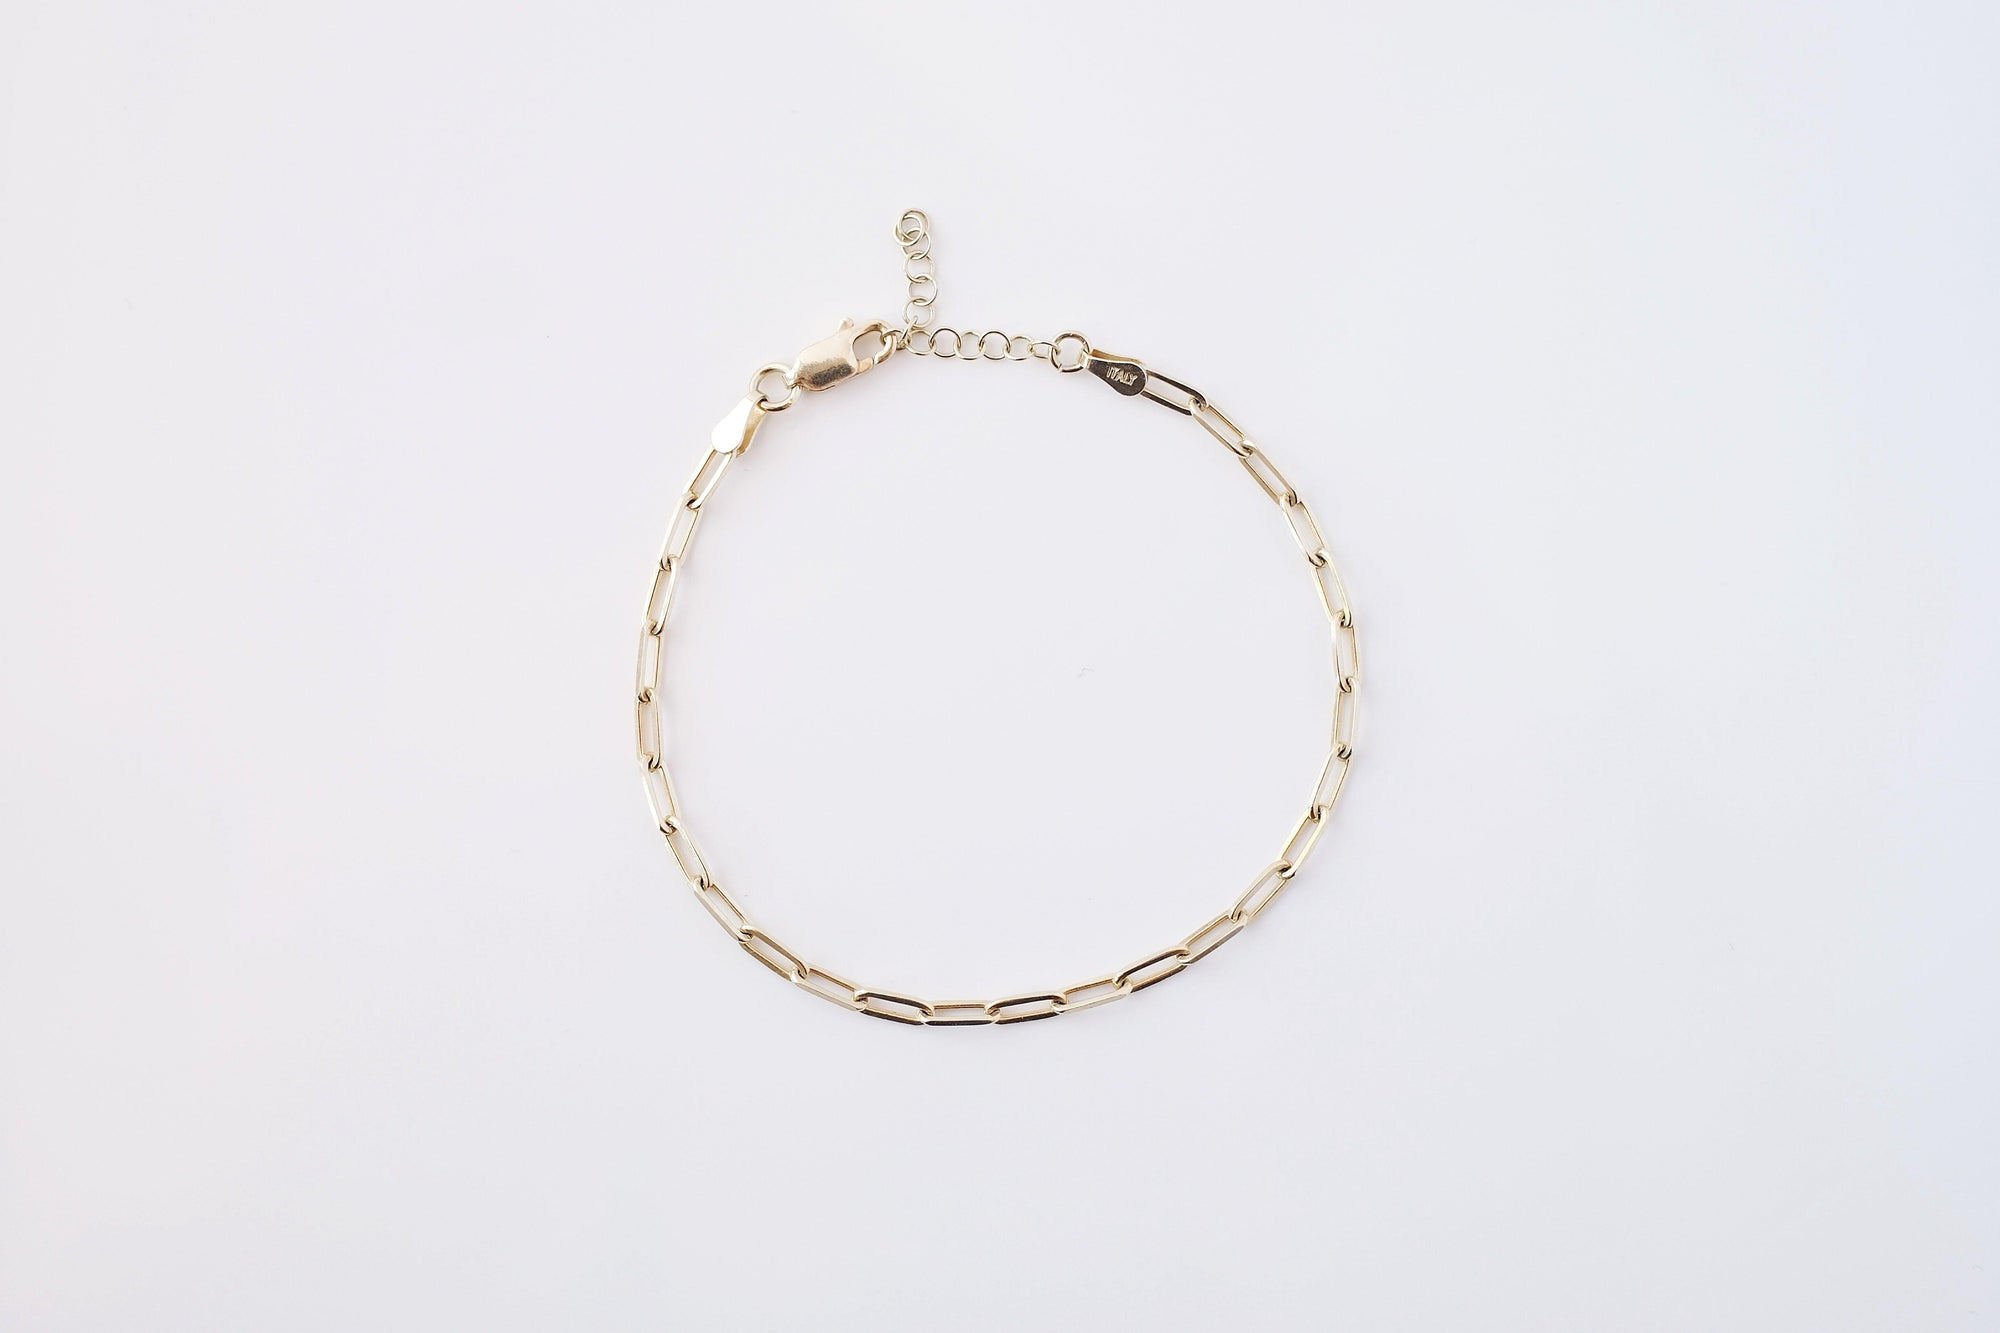 Gold Connection Bracelet